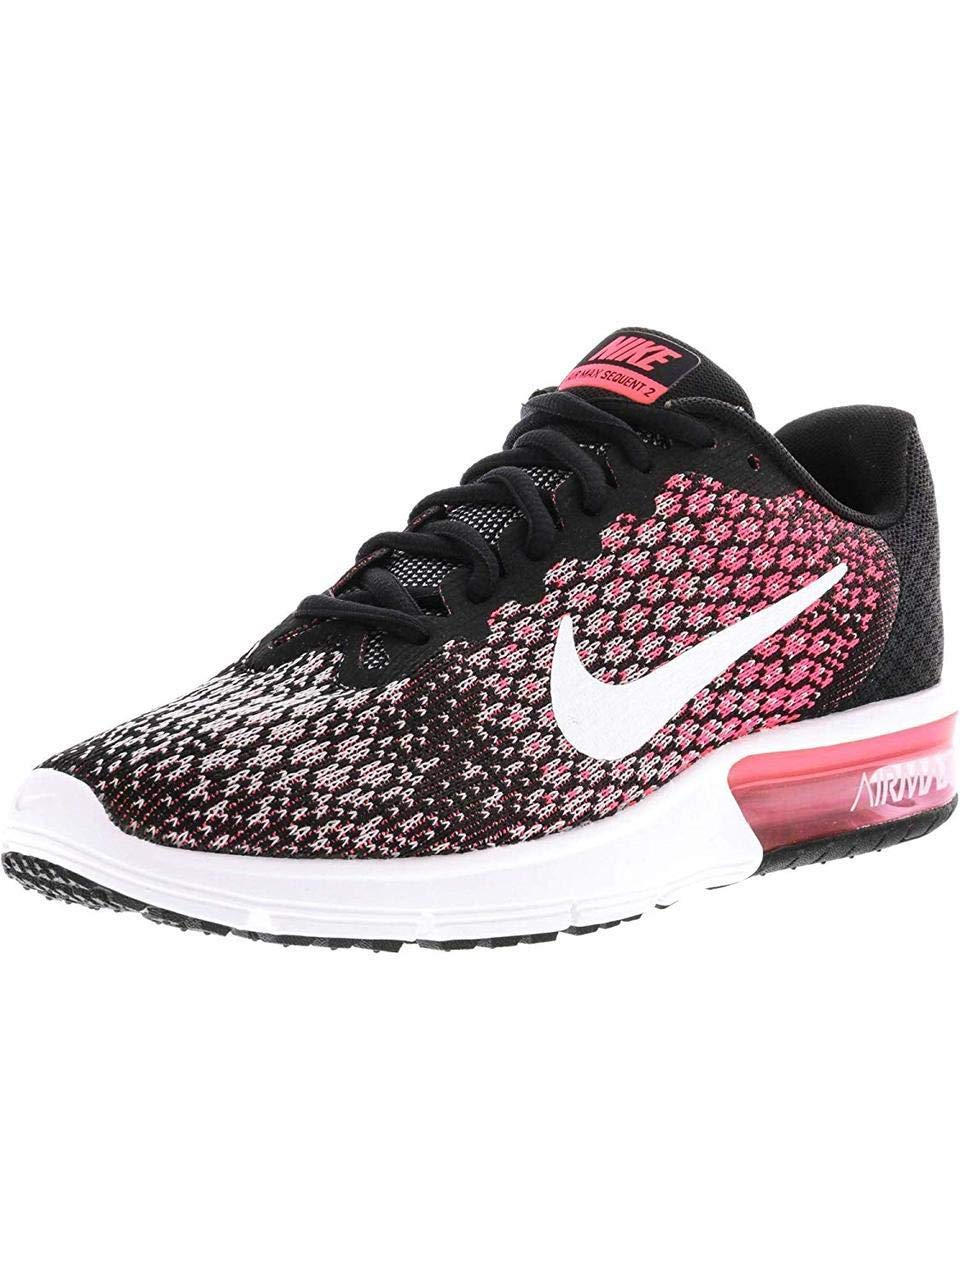 Galleon - NIKE Womens Air Max Sequent 2 Running Shoes Black White Racer  Pink 852465-004 Size 7 843b60b00